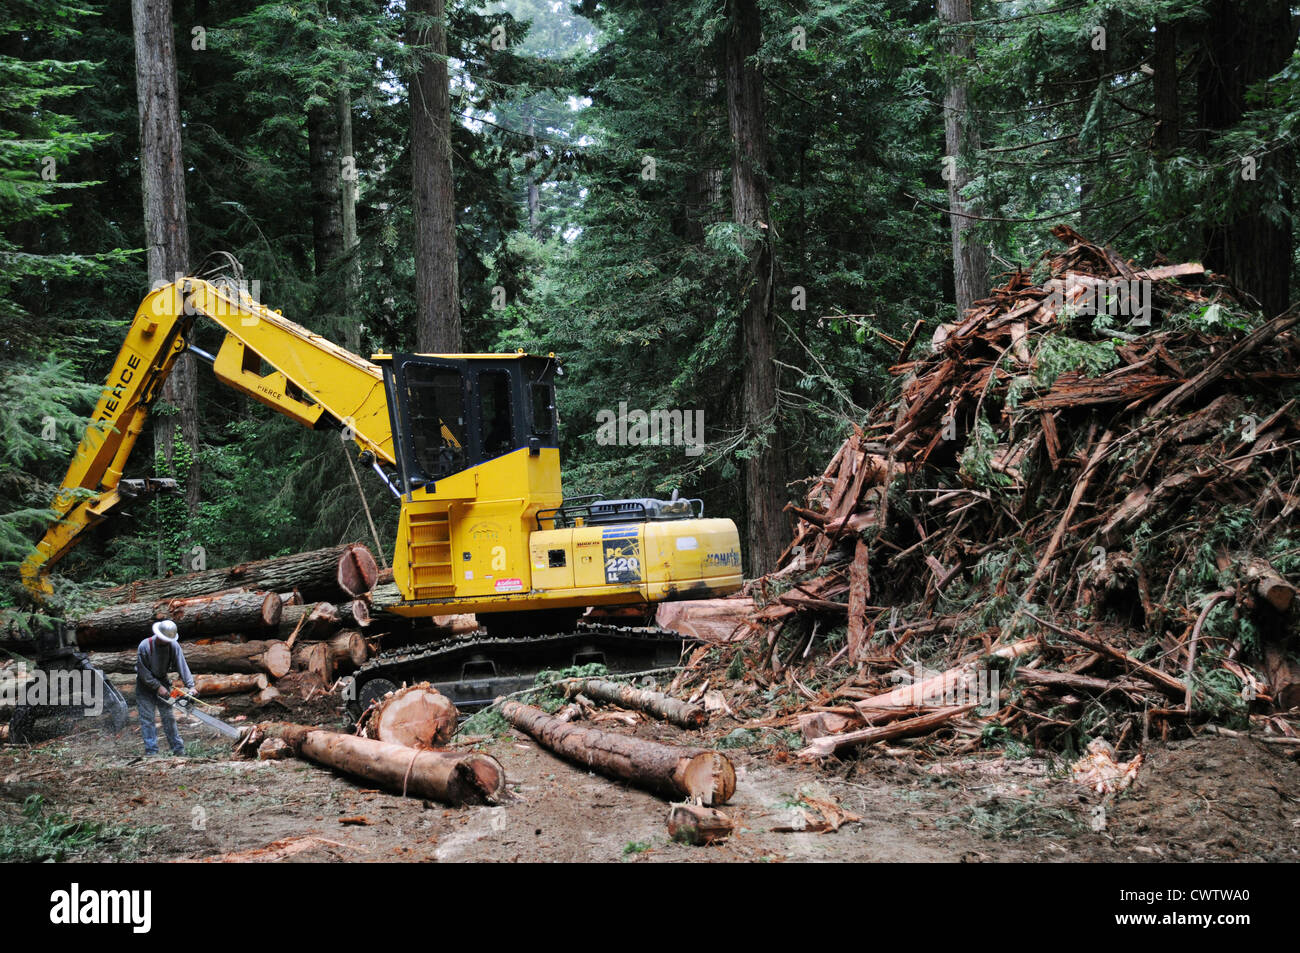 Logging and cutting of  tallest trees in the world, the Giant Sequoias in the Redwood forests of Northern California - Stock Image